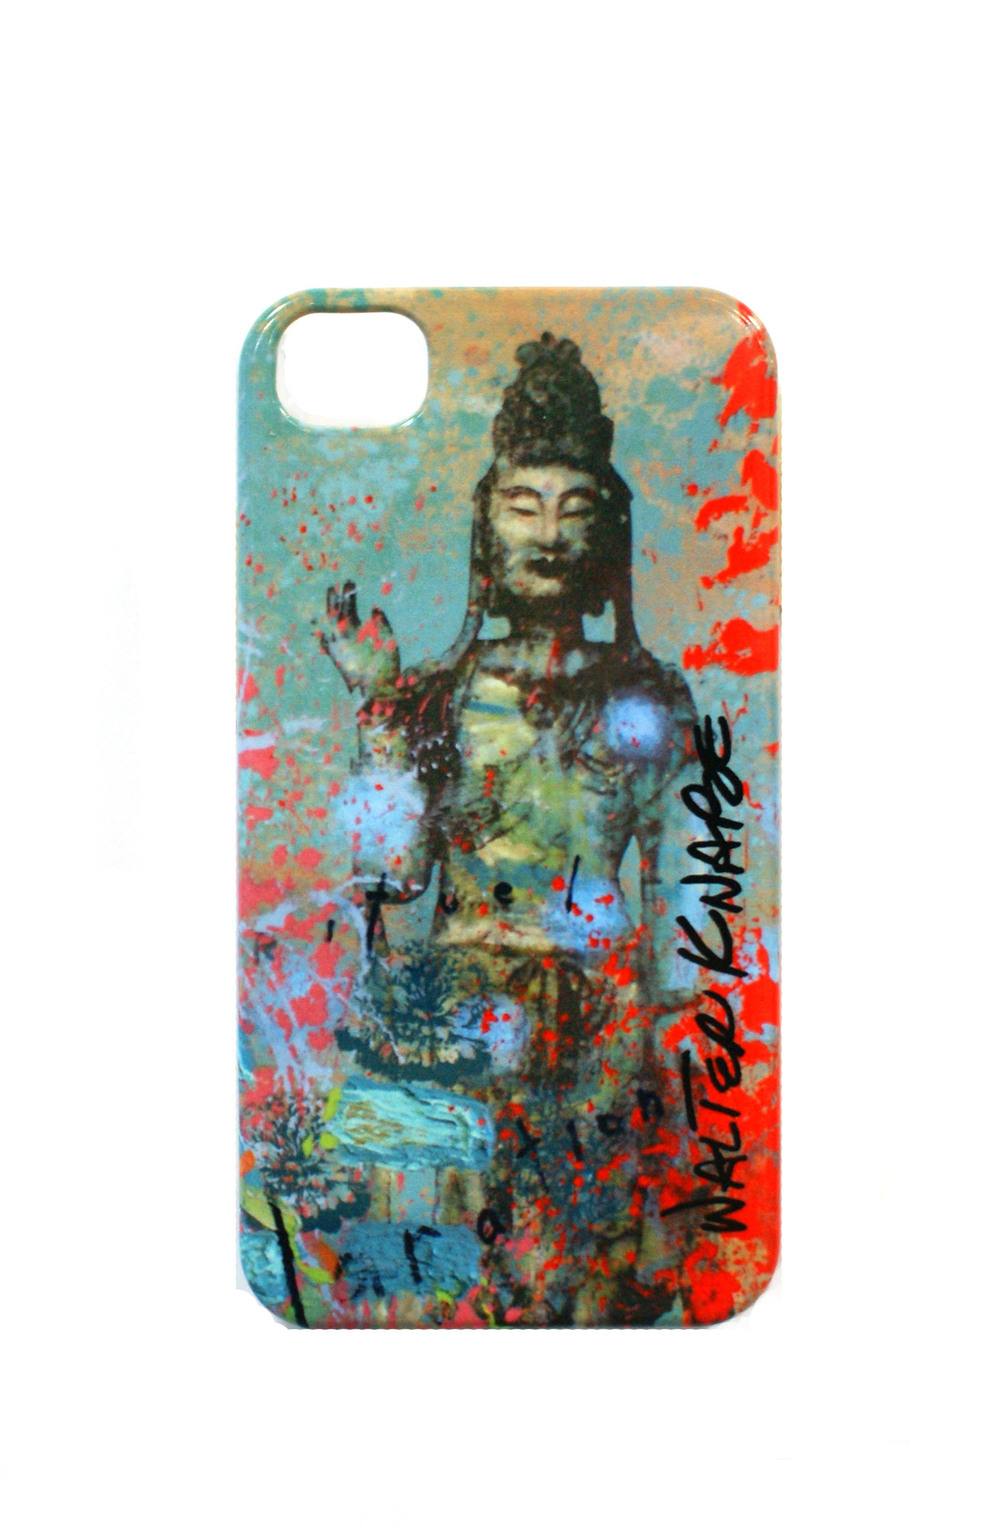 Diety IPhone cover.jpg